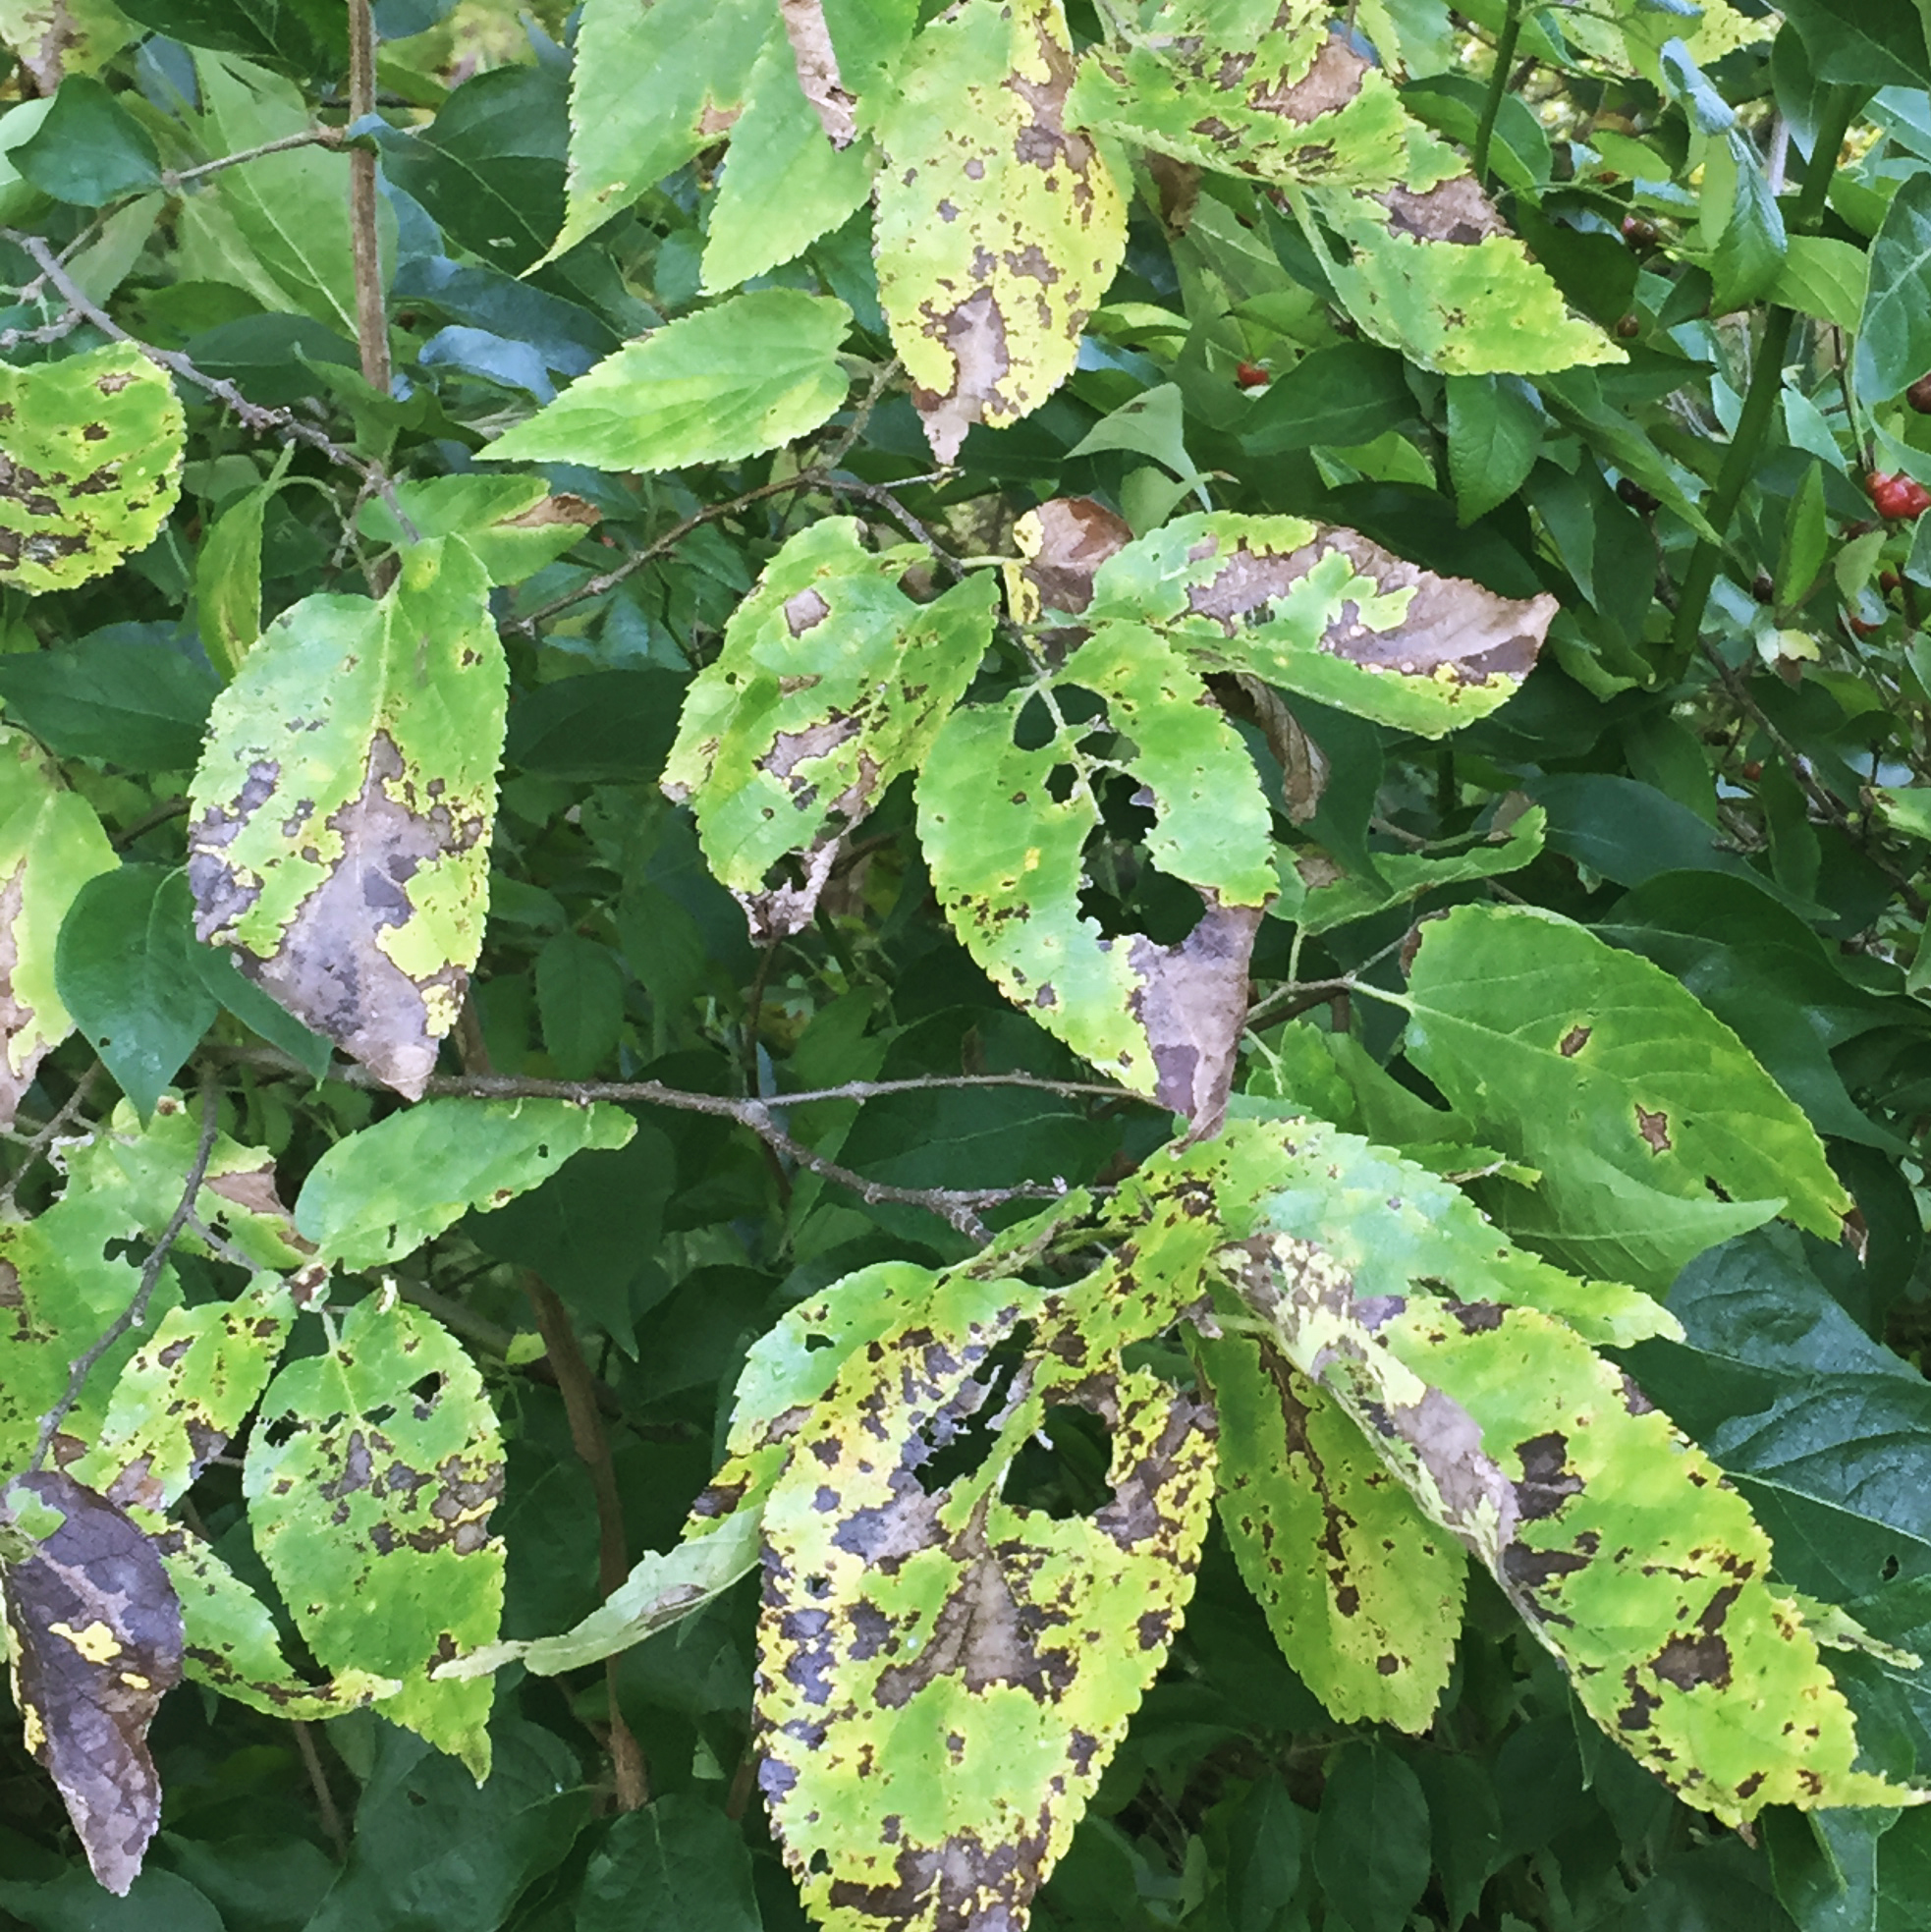 Hackberry. Foliar fungus (possibly) with some insect feeding damage.